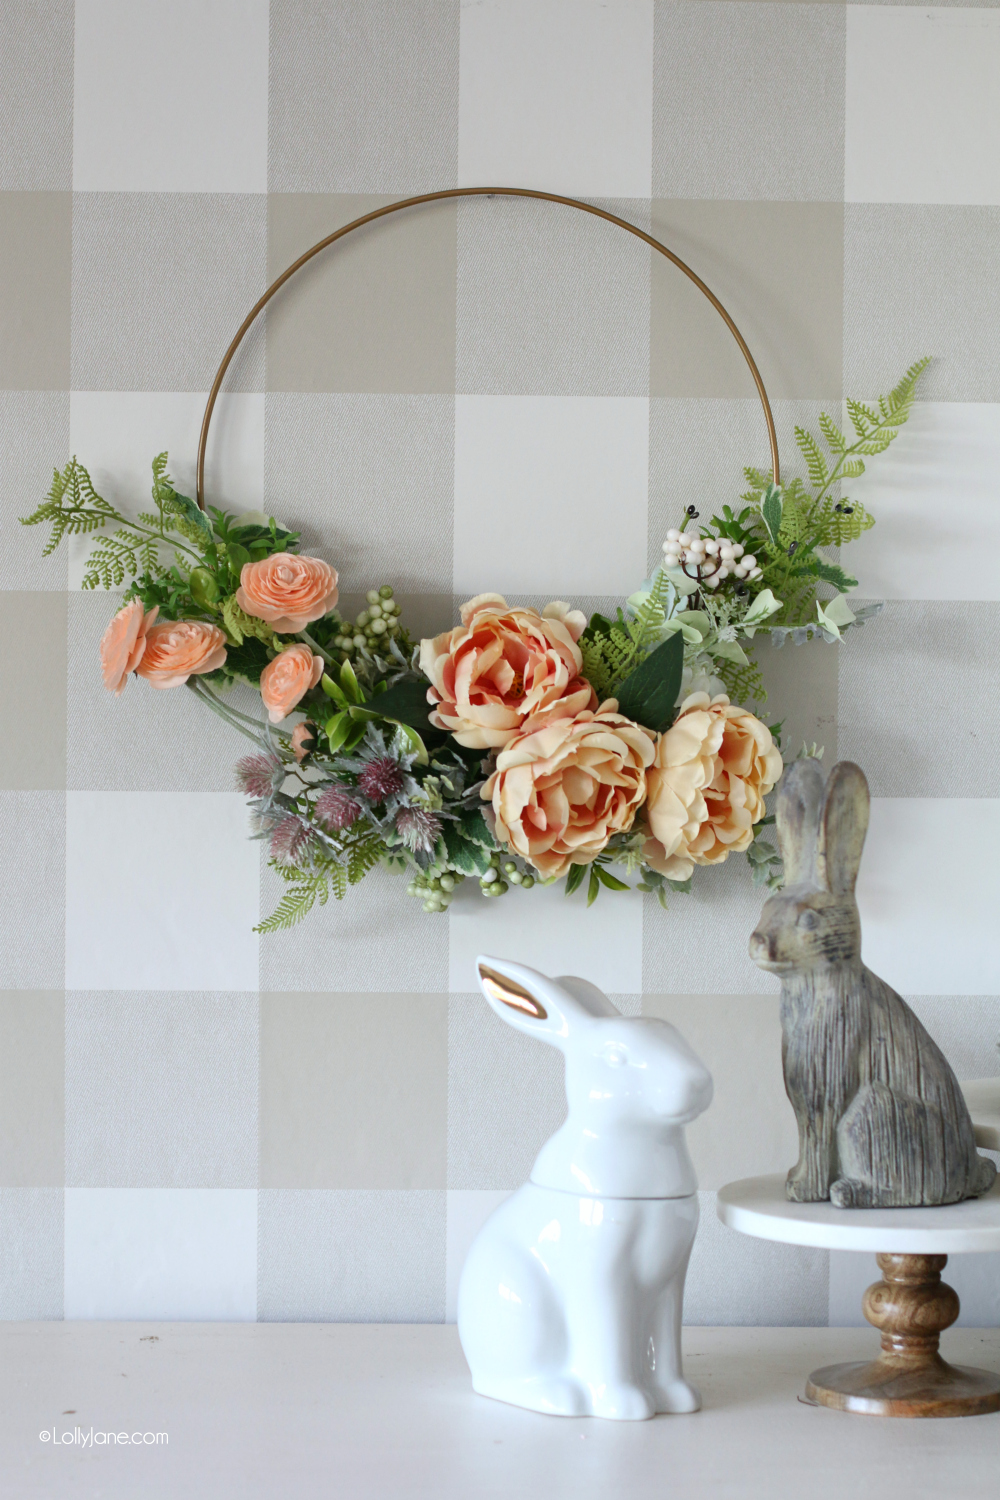 BEAUTIFUL Modern Floral Wreath, perfect for spring or Easter! And, made in 10 minutes!! So cute and easy, love this simple DIY to get in the festive spring mood! #diy #springwreath #floral #craft